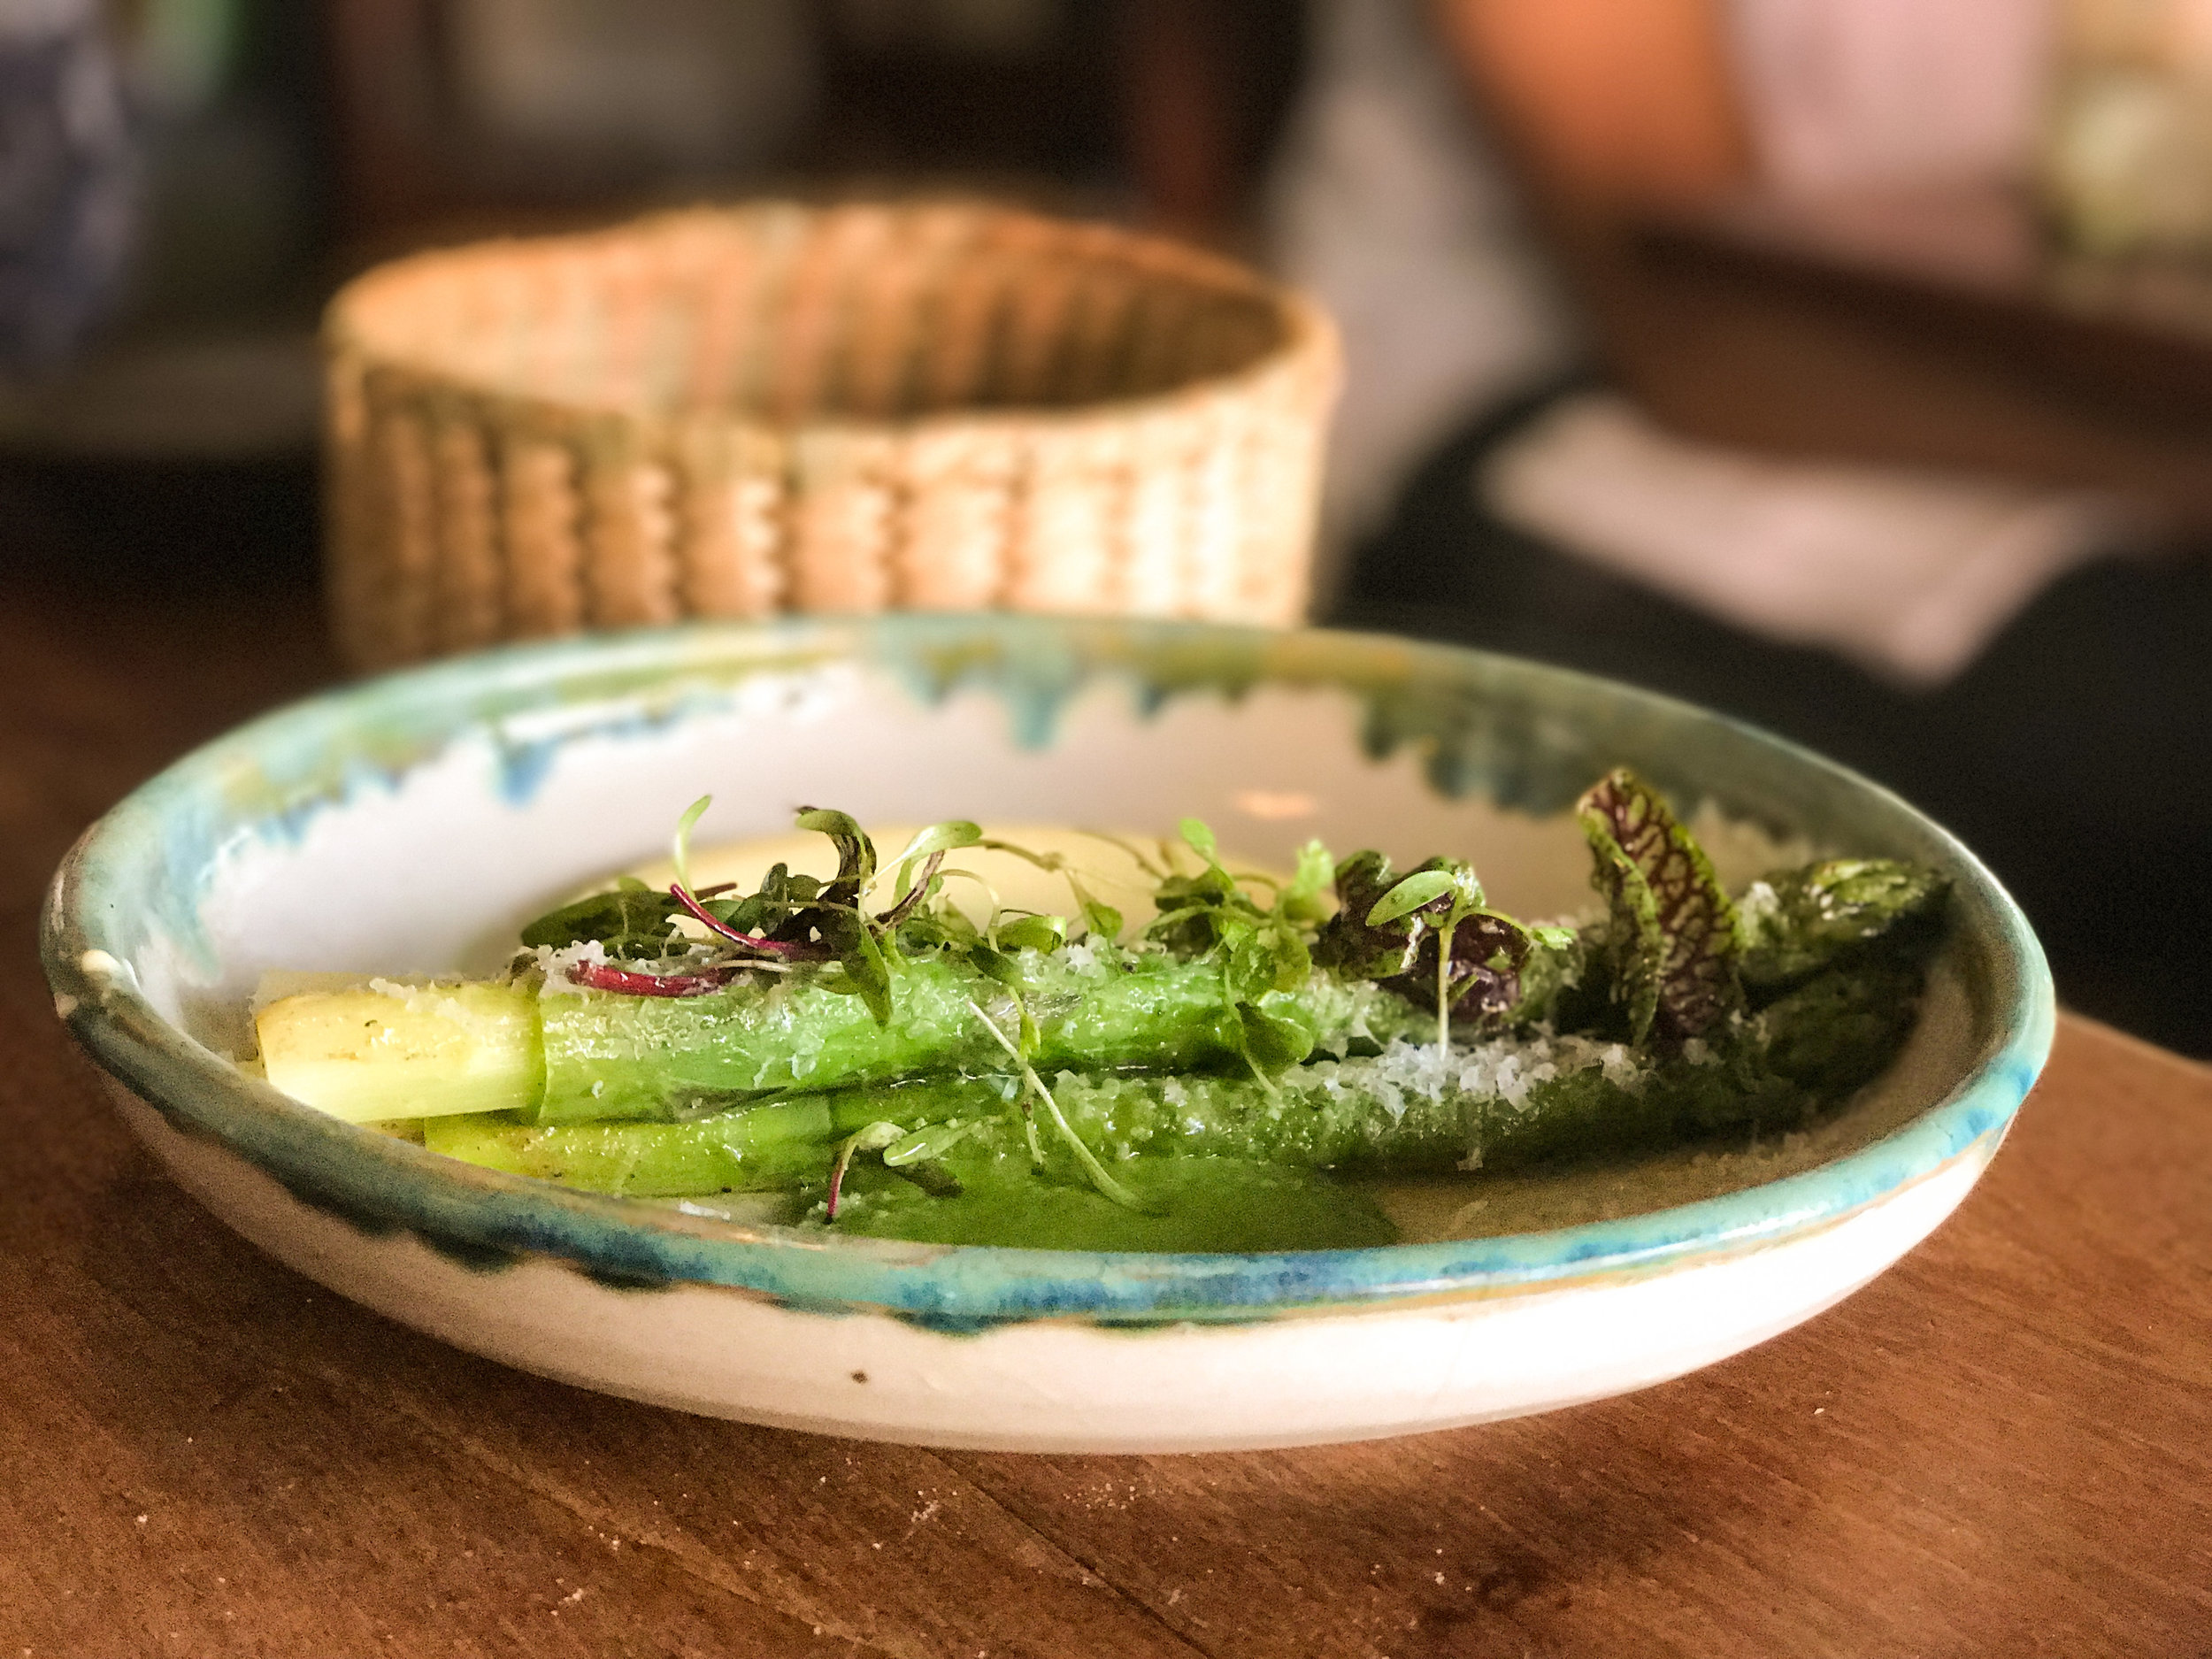 Maximo Bistro's asparagus with hollandaise and pea puree